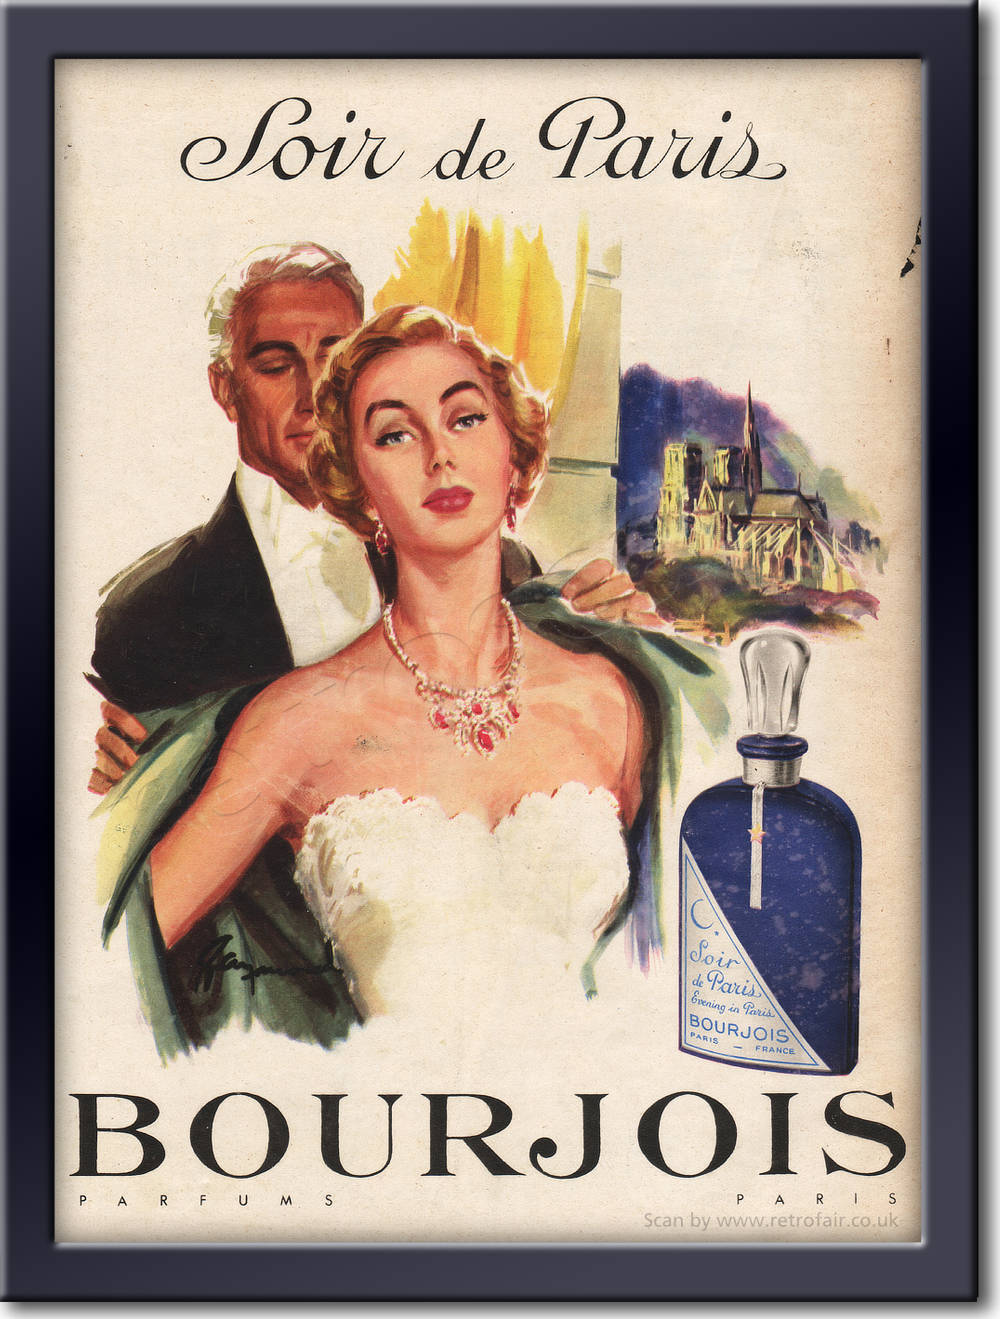 1954 Bourjois Perfume framed preview retro